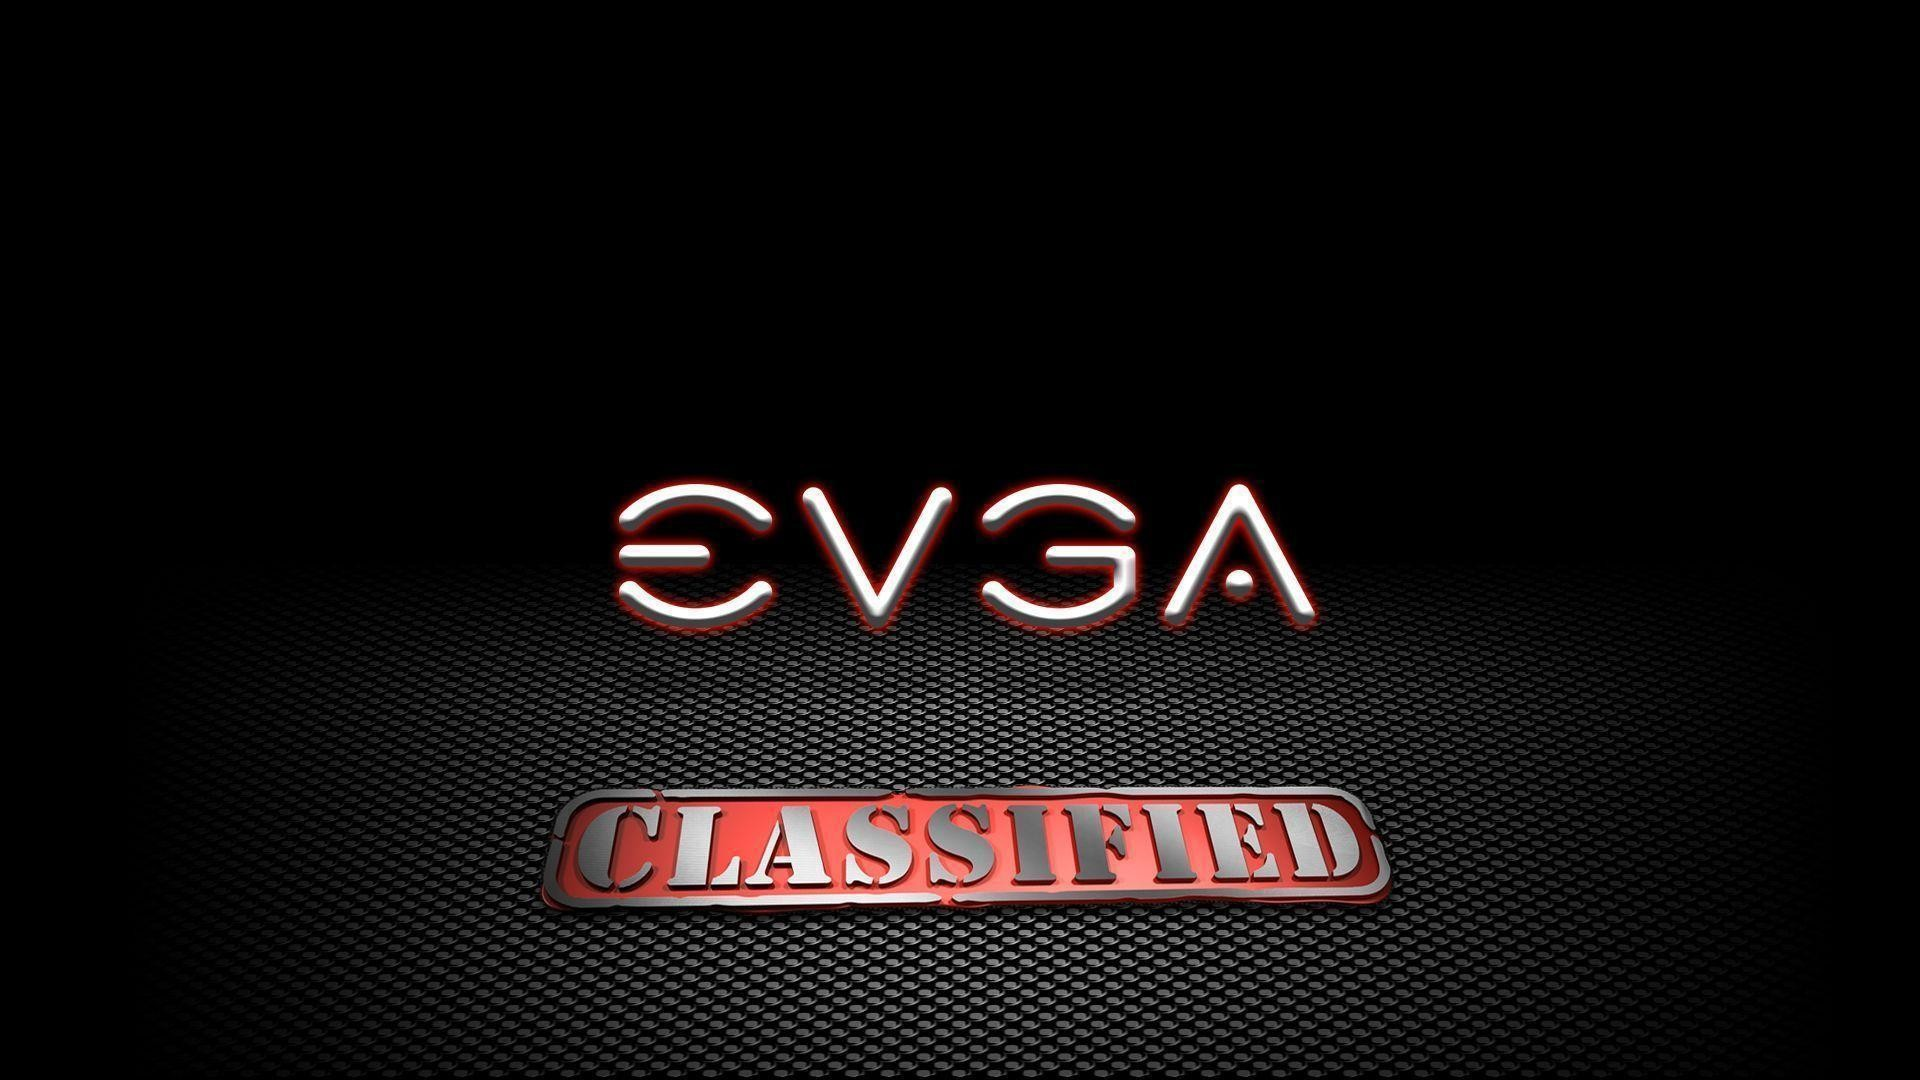 1920x1080 Wallpapers For > Evga Wallpaper 1080p